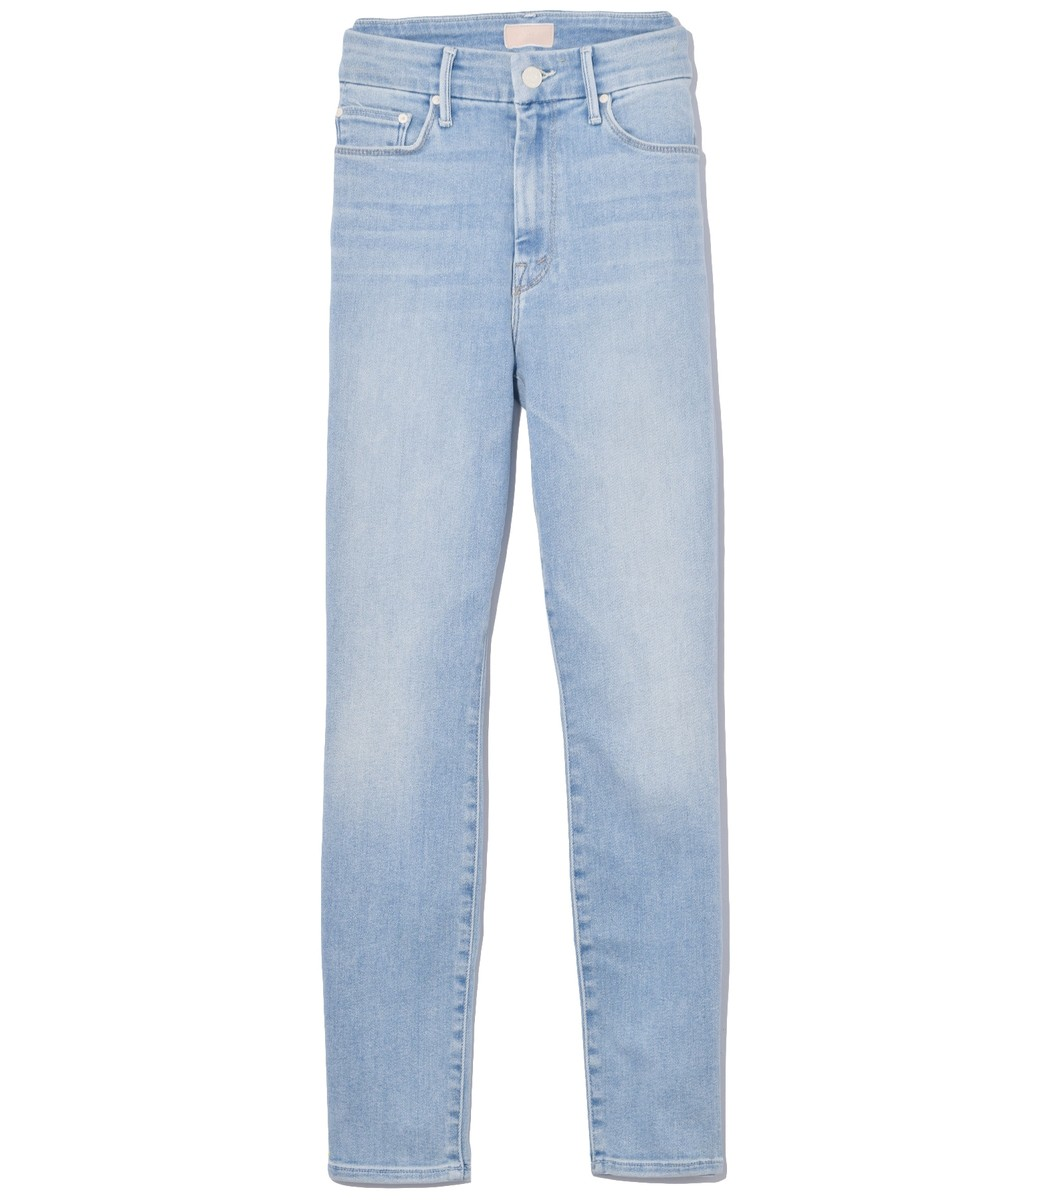 Mother Jeans High Waisted Looker Crop Jean in Swimming Pool Sunday